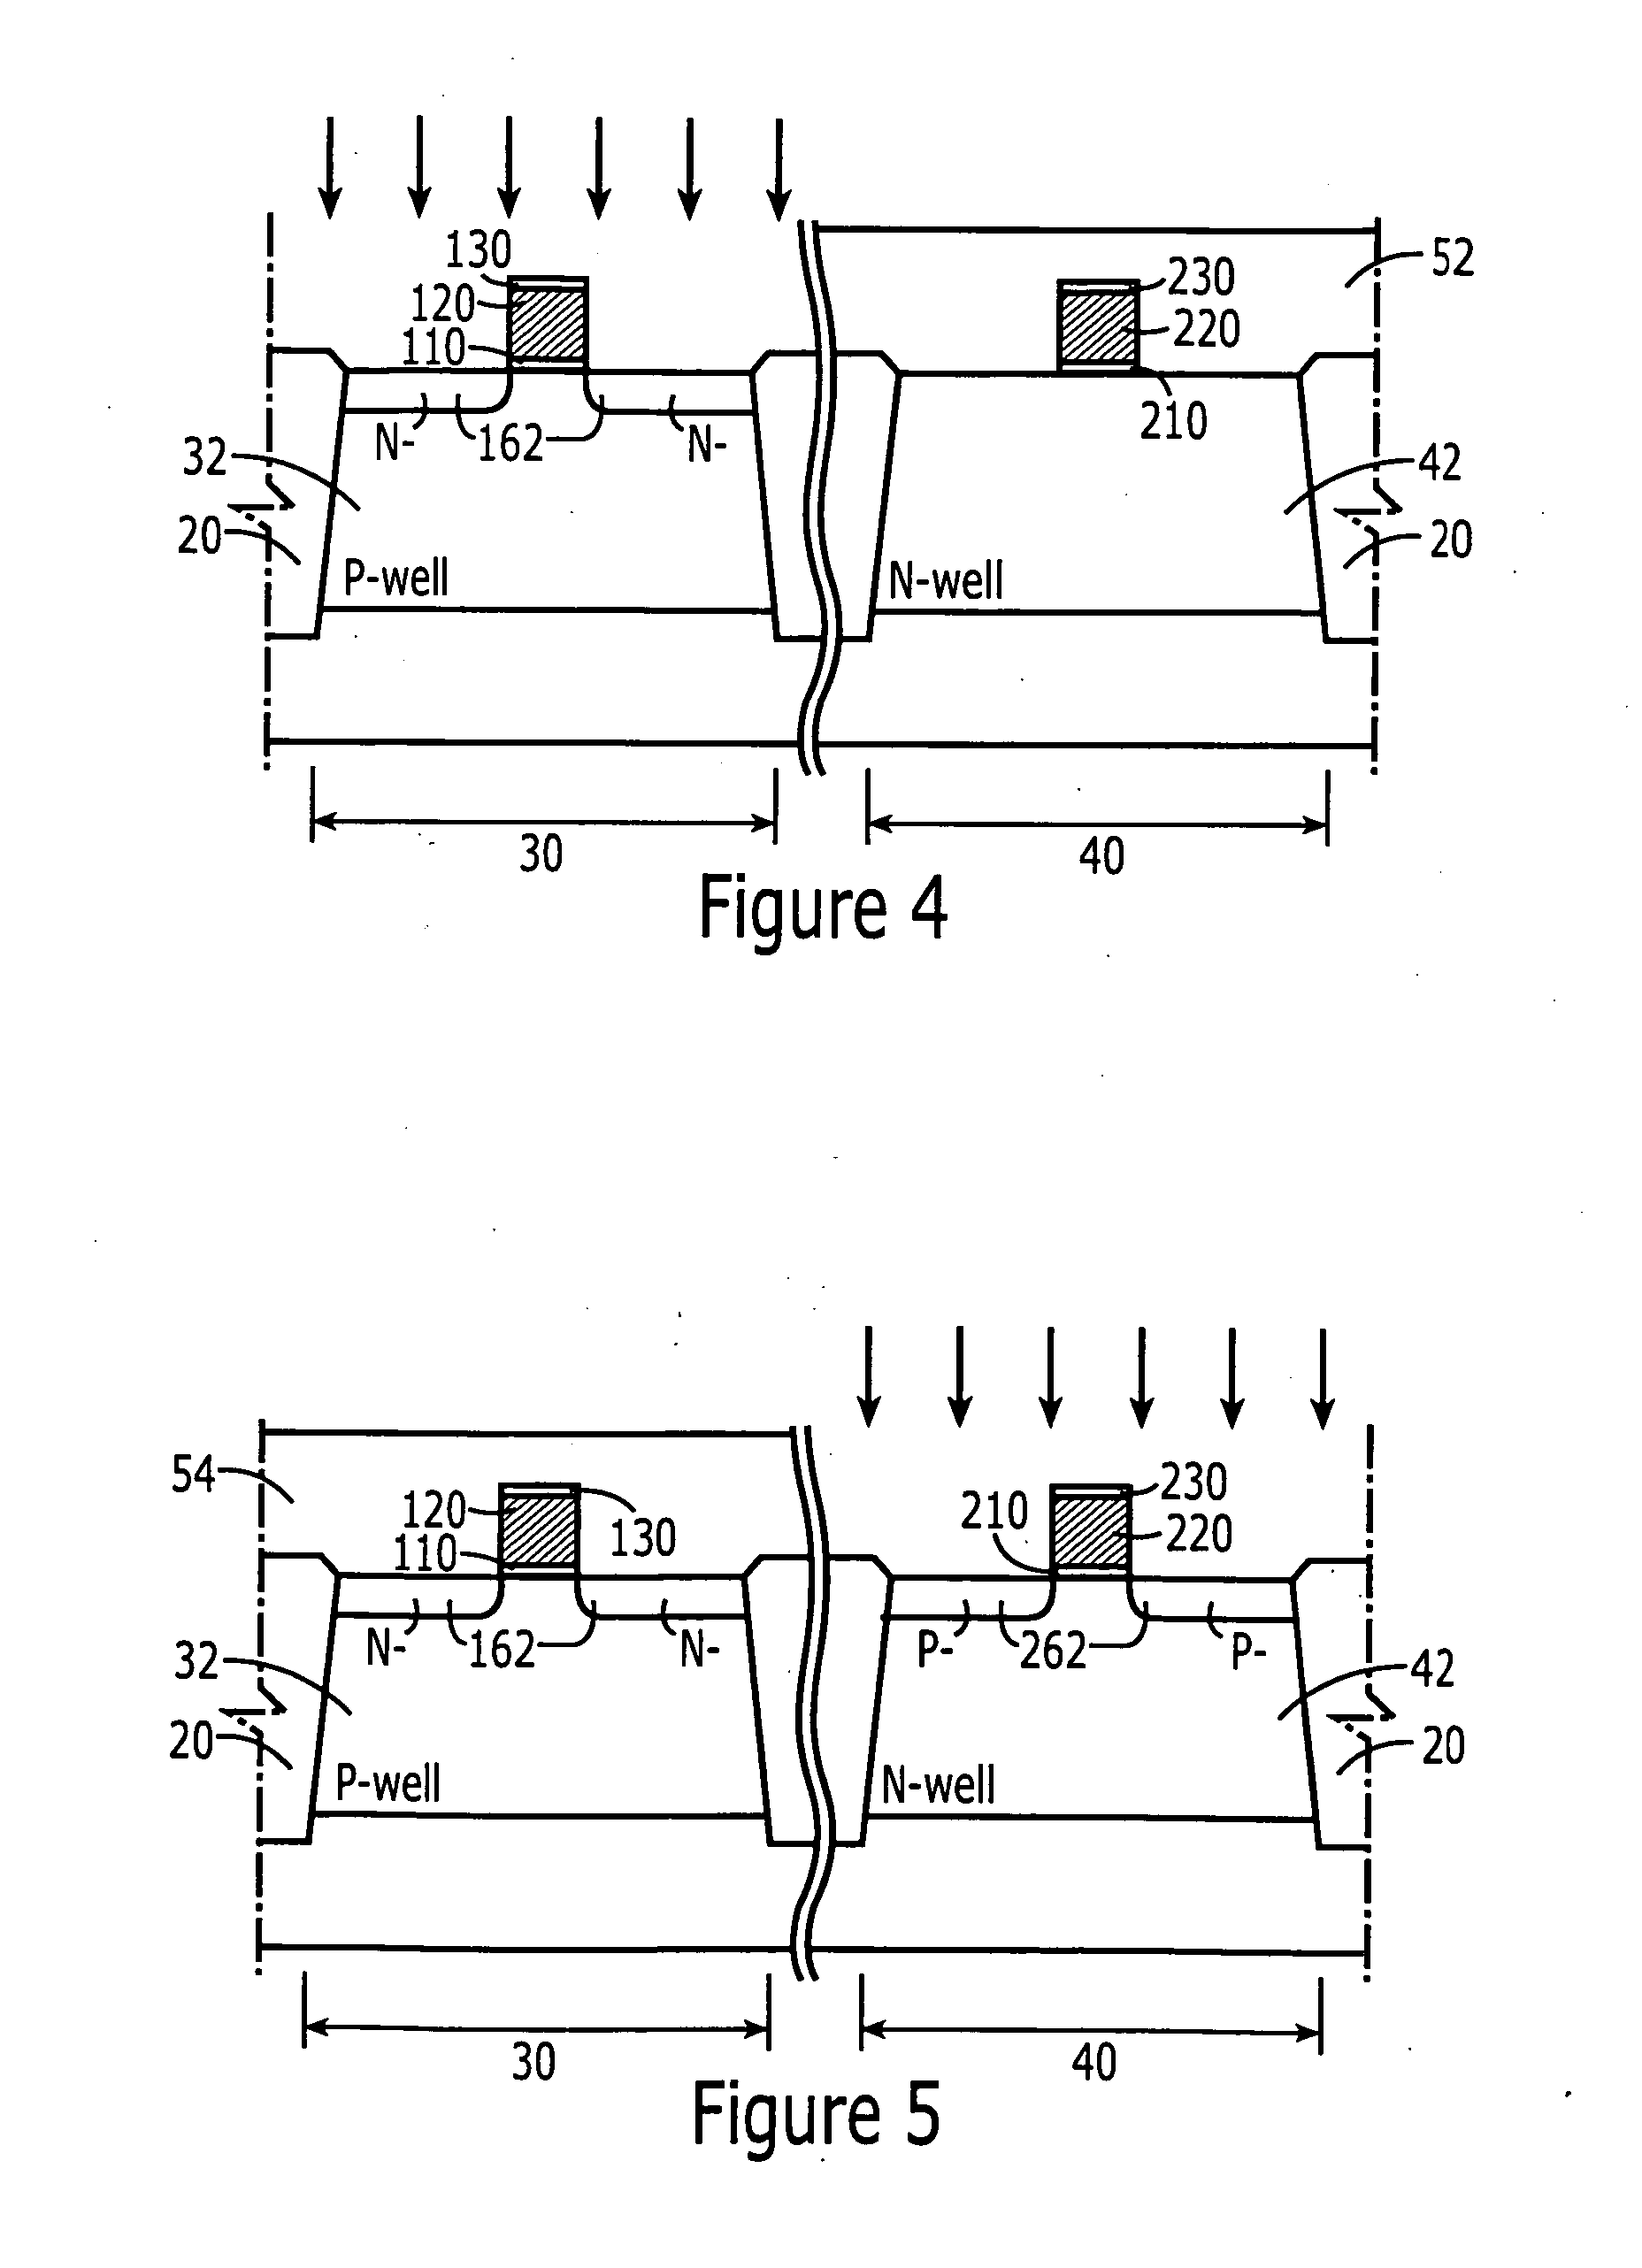 methods of forming nmos/pmos transistors with source/drains